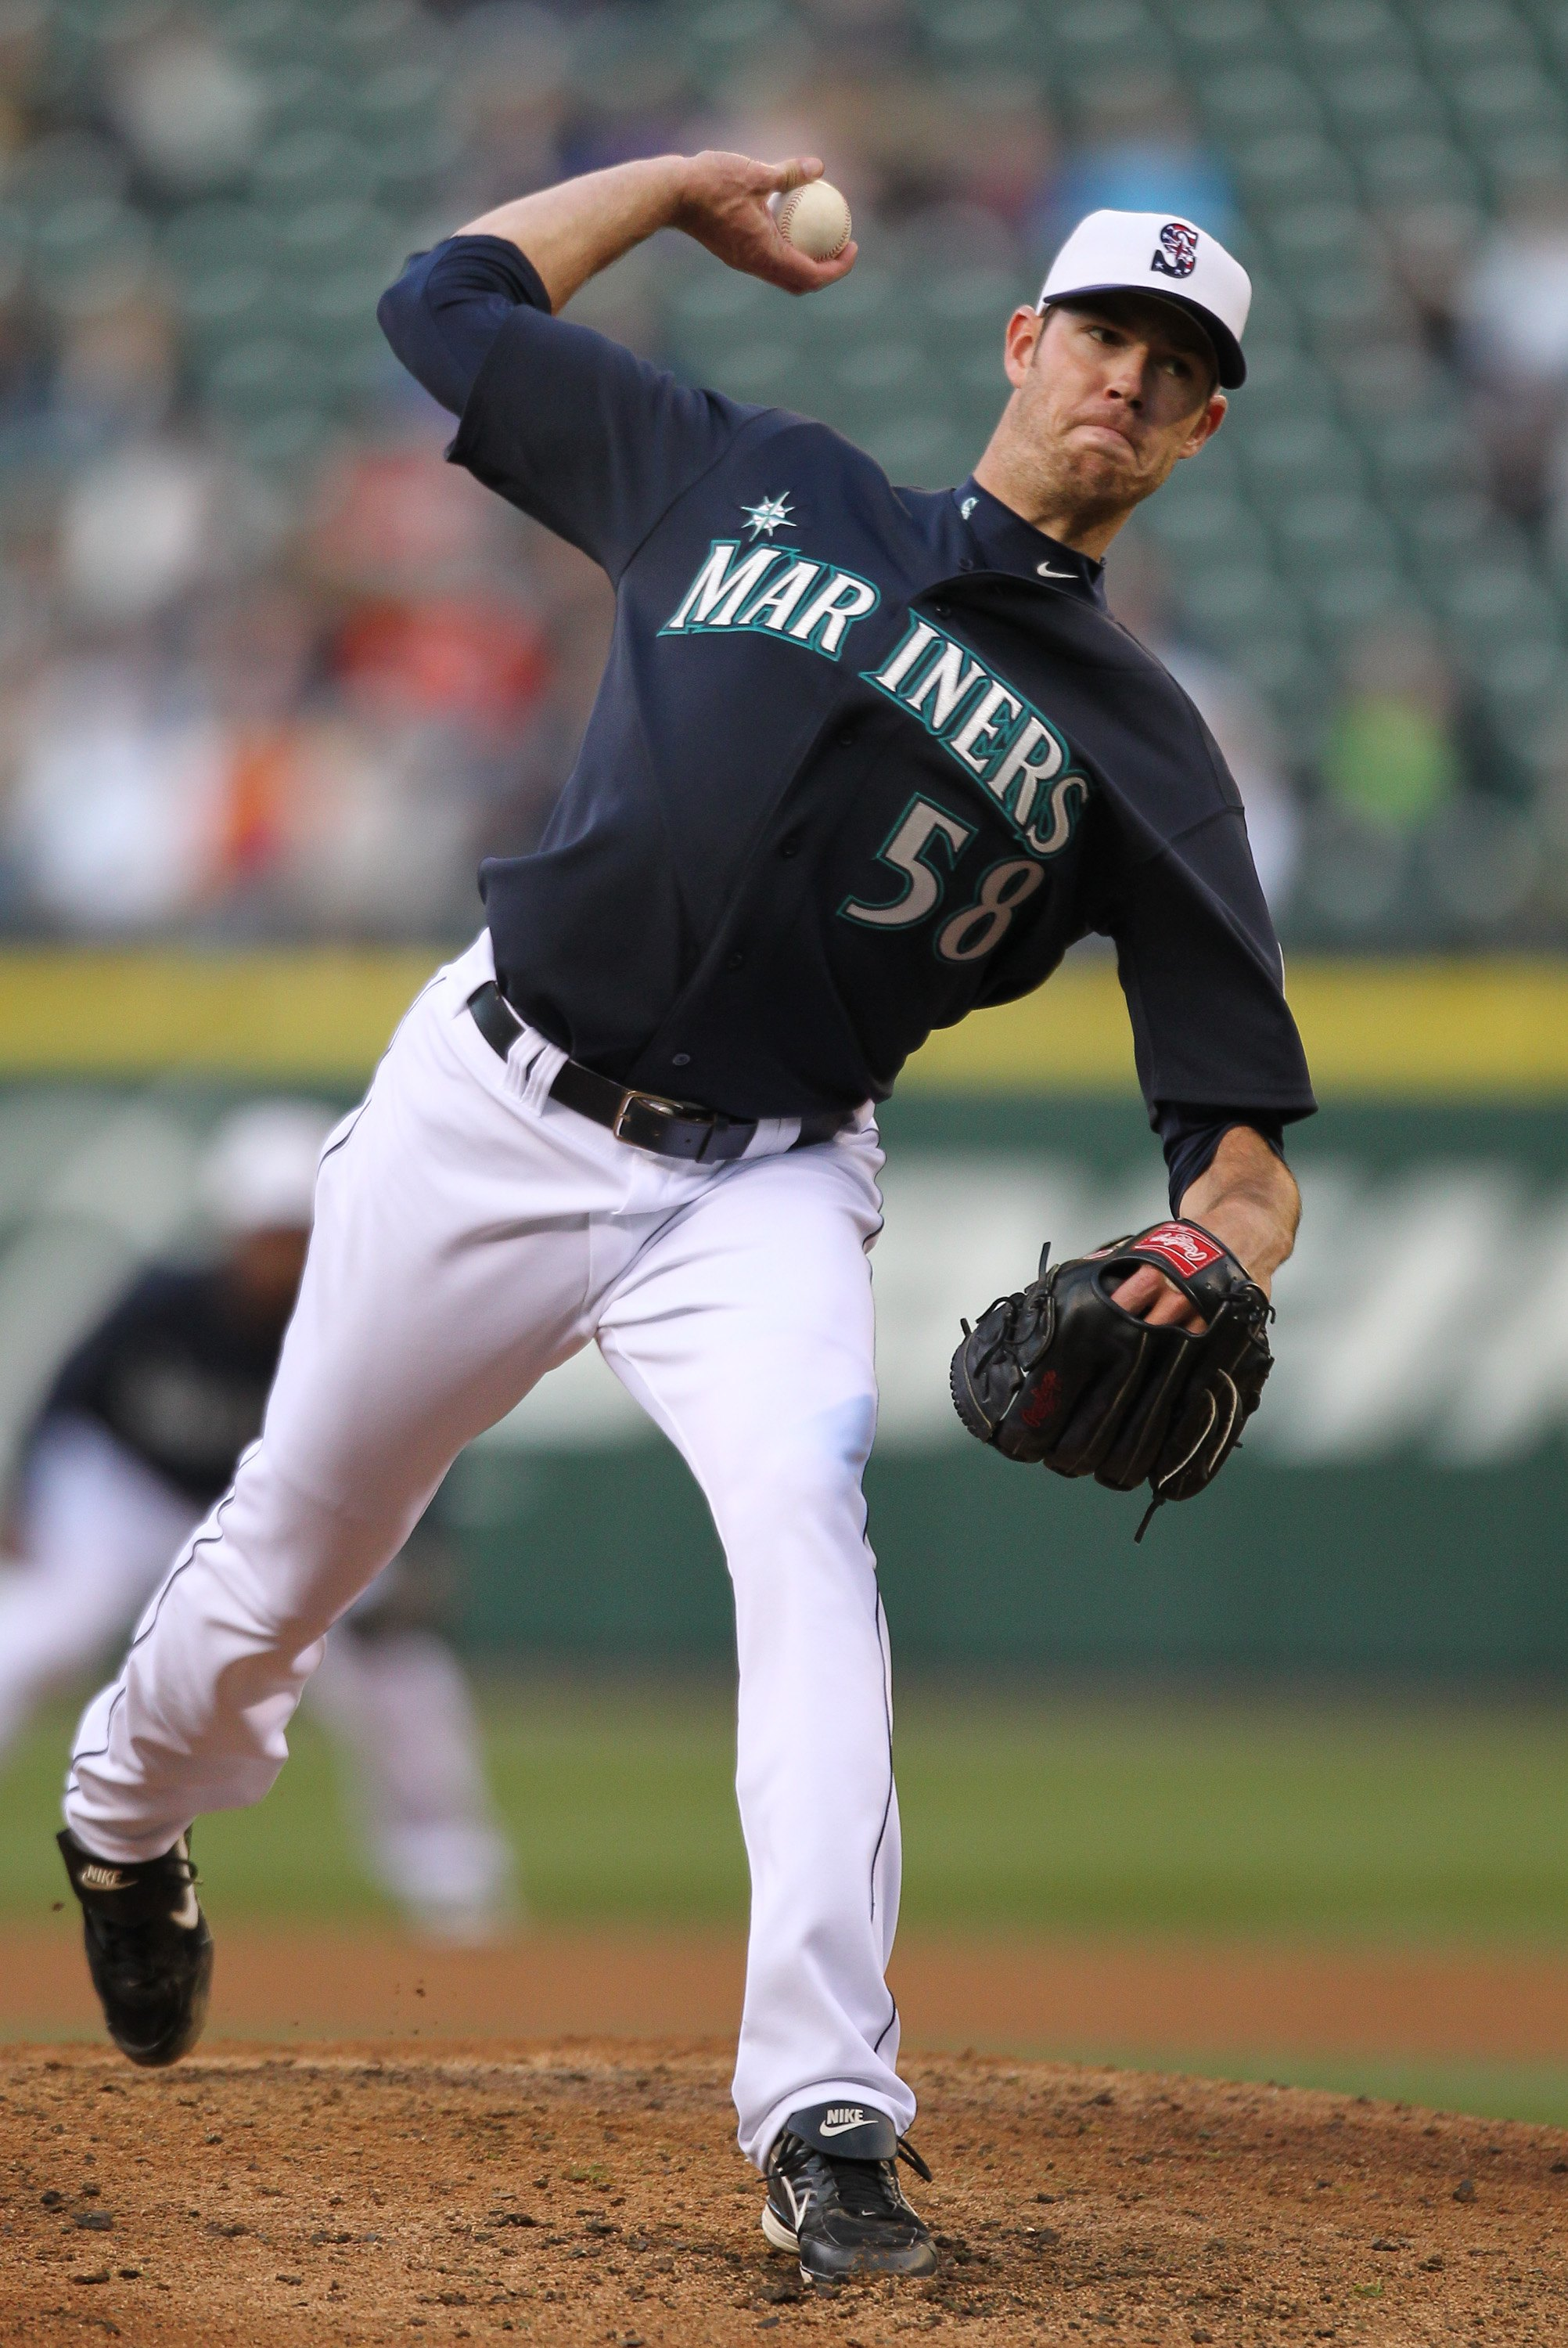 SEATTLE - MAY 31:  Starting pitcher Doug Fister #58 of the Seattle Mariners pitches against the Minnesota Twins at Safeco Field on May 31, 2010 in Seattle, Washington. (Photo by Otto Greule Jr/Getty Images)